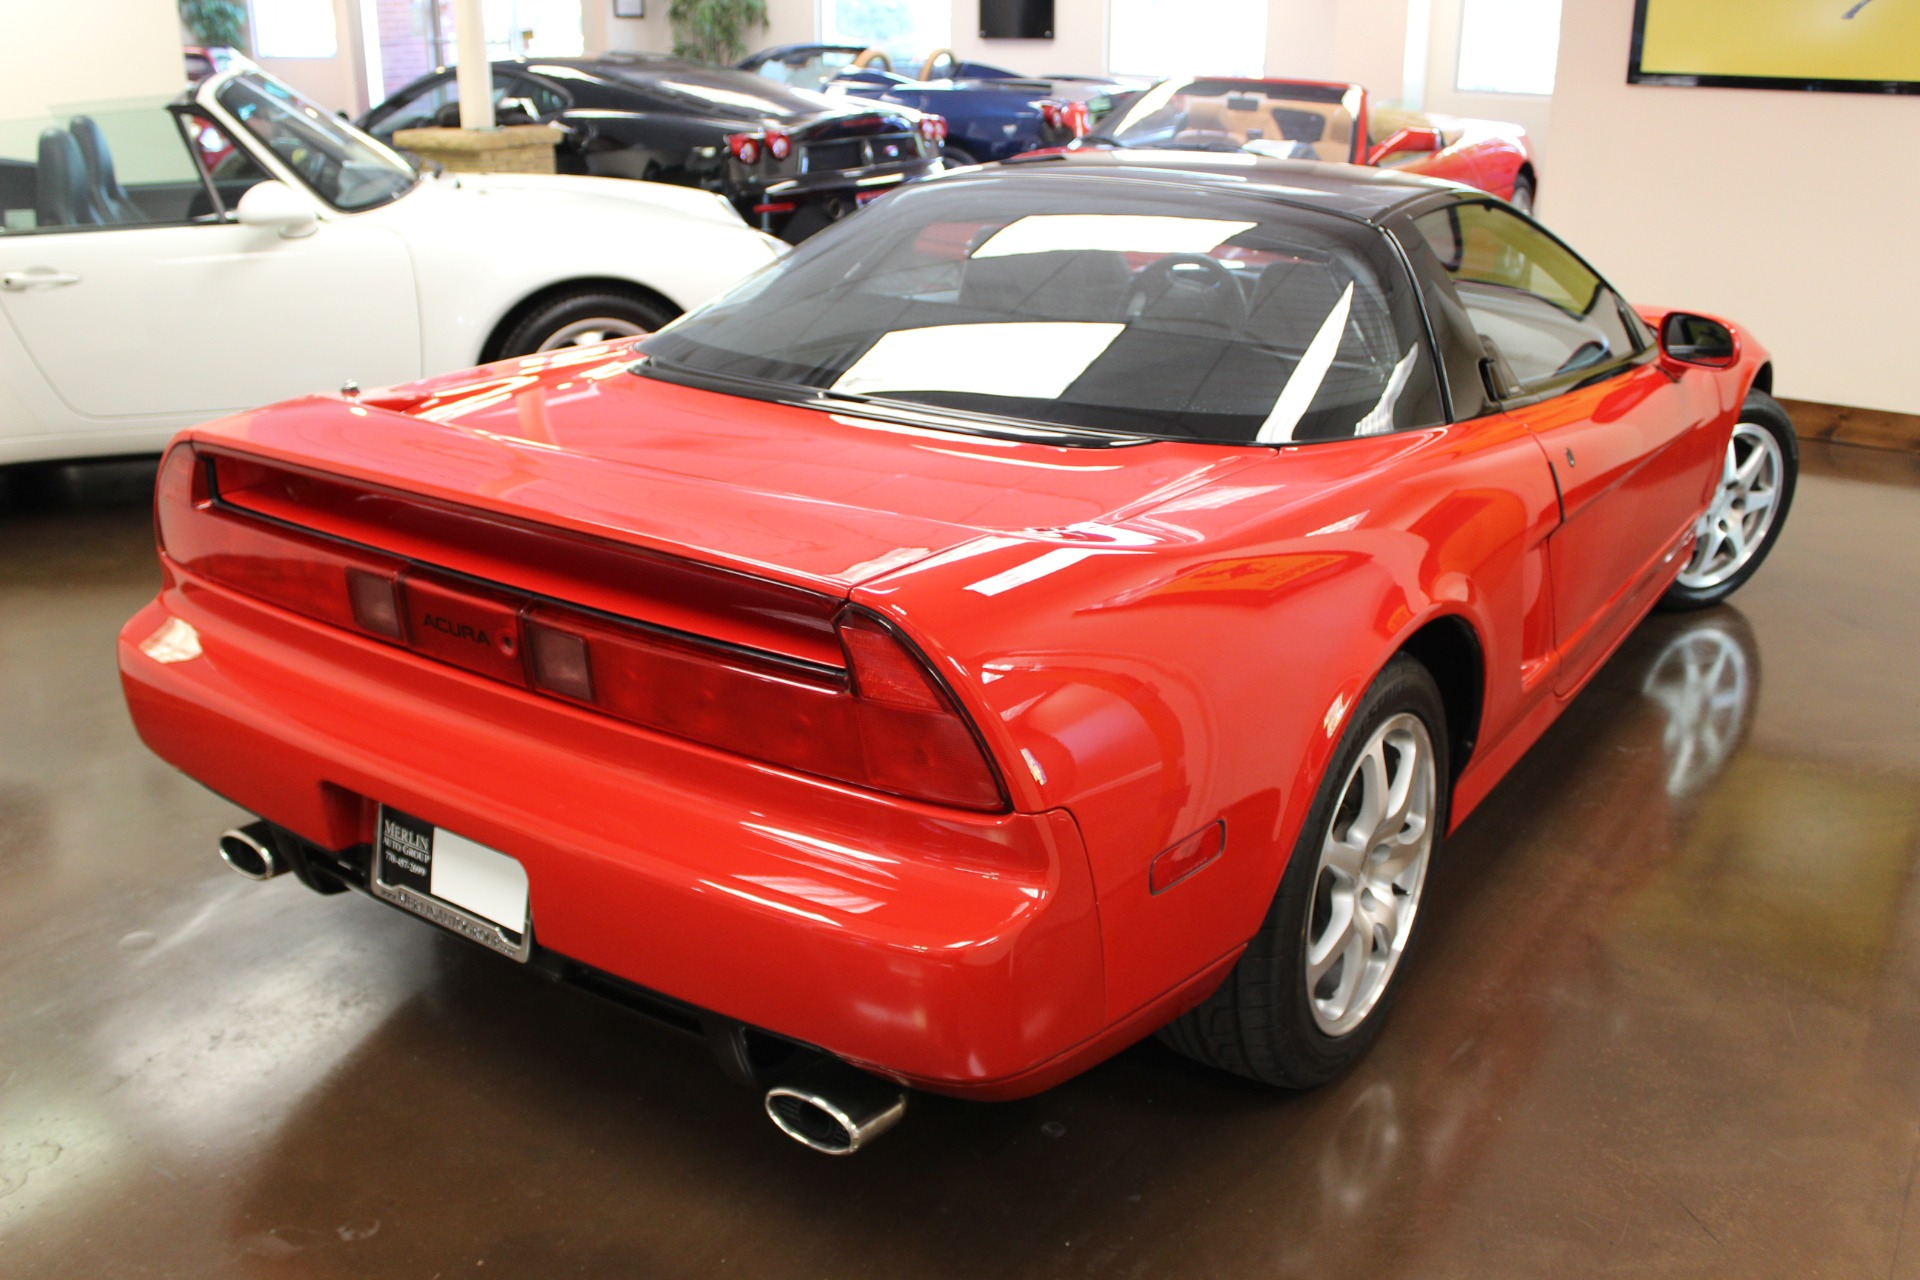 Used Acura NSX Stock P Ultra Luxury Car From Merlin Auto - 1992 acura nsx for sale